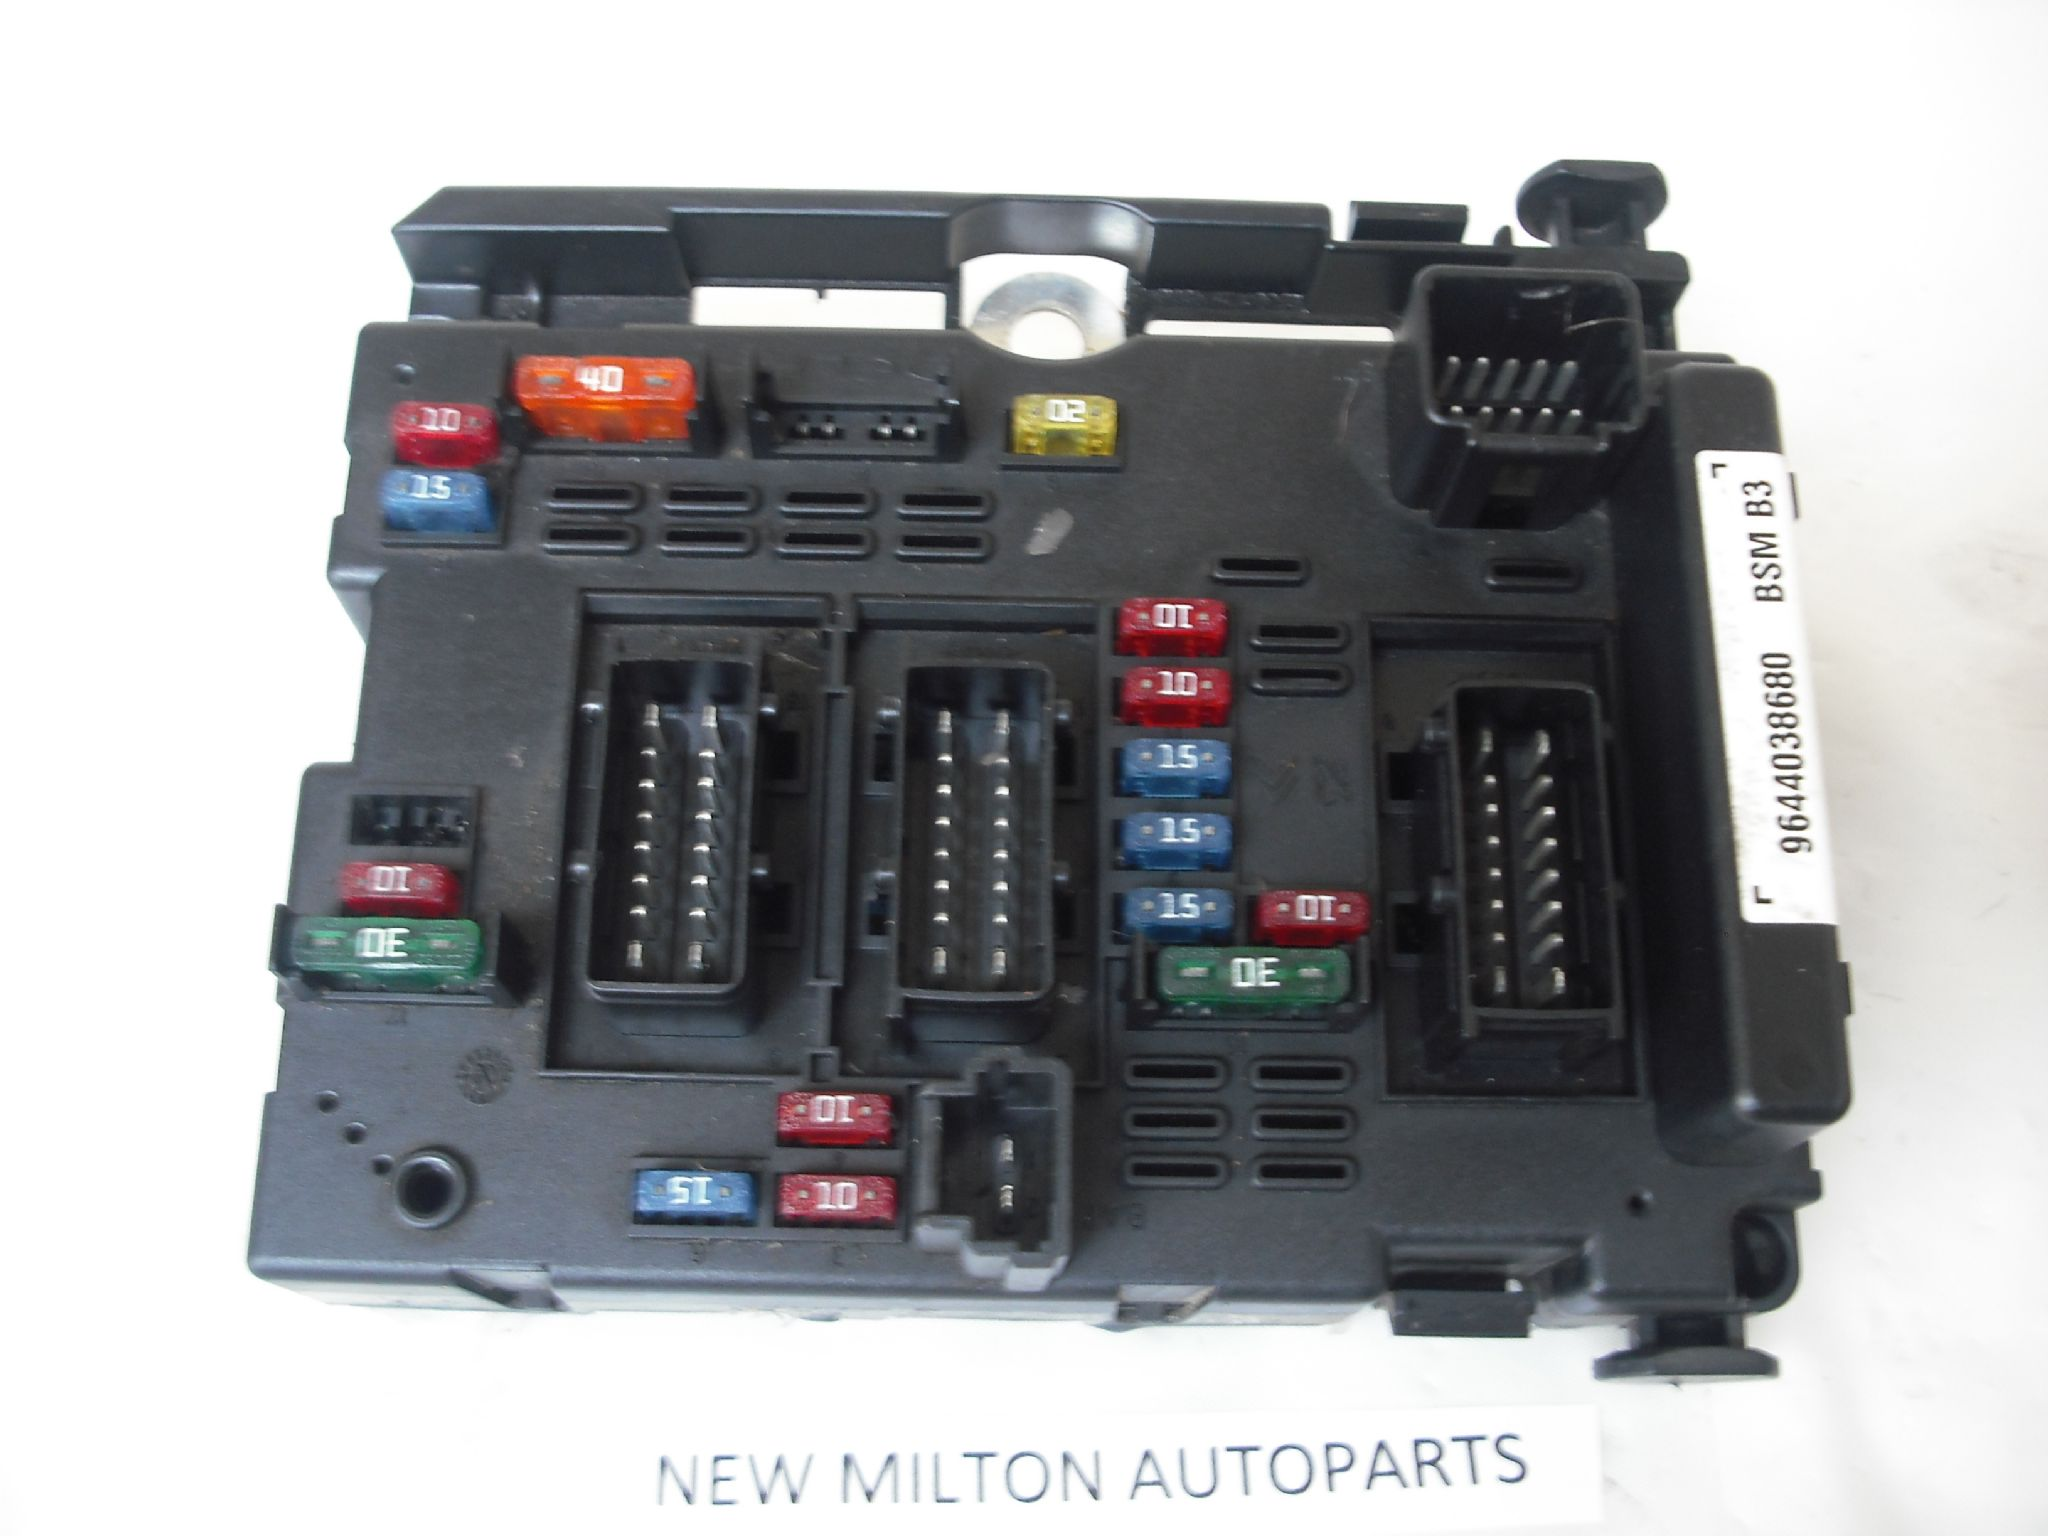 peugeot 307 partner citroen berlingo fuse box controller 9644038680 bsm b3 ........................sorry out of stock 5843 p peugeot 307 partner citroen berlingo fuse box controller citroen berlingo 2003 fuse box at crackthecode.co